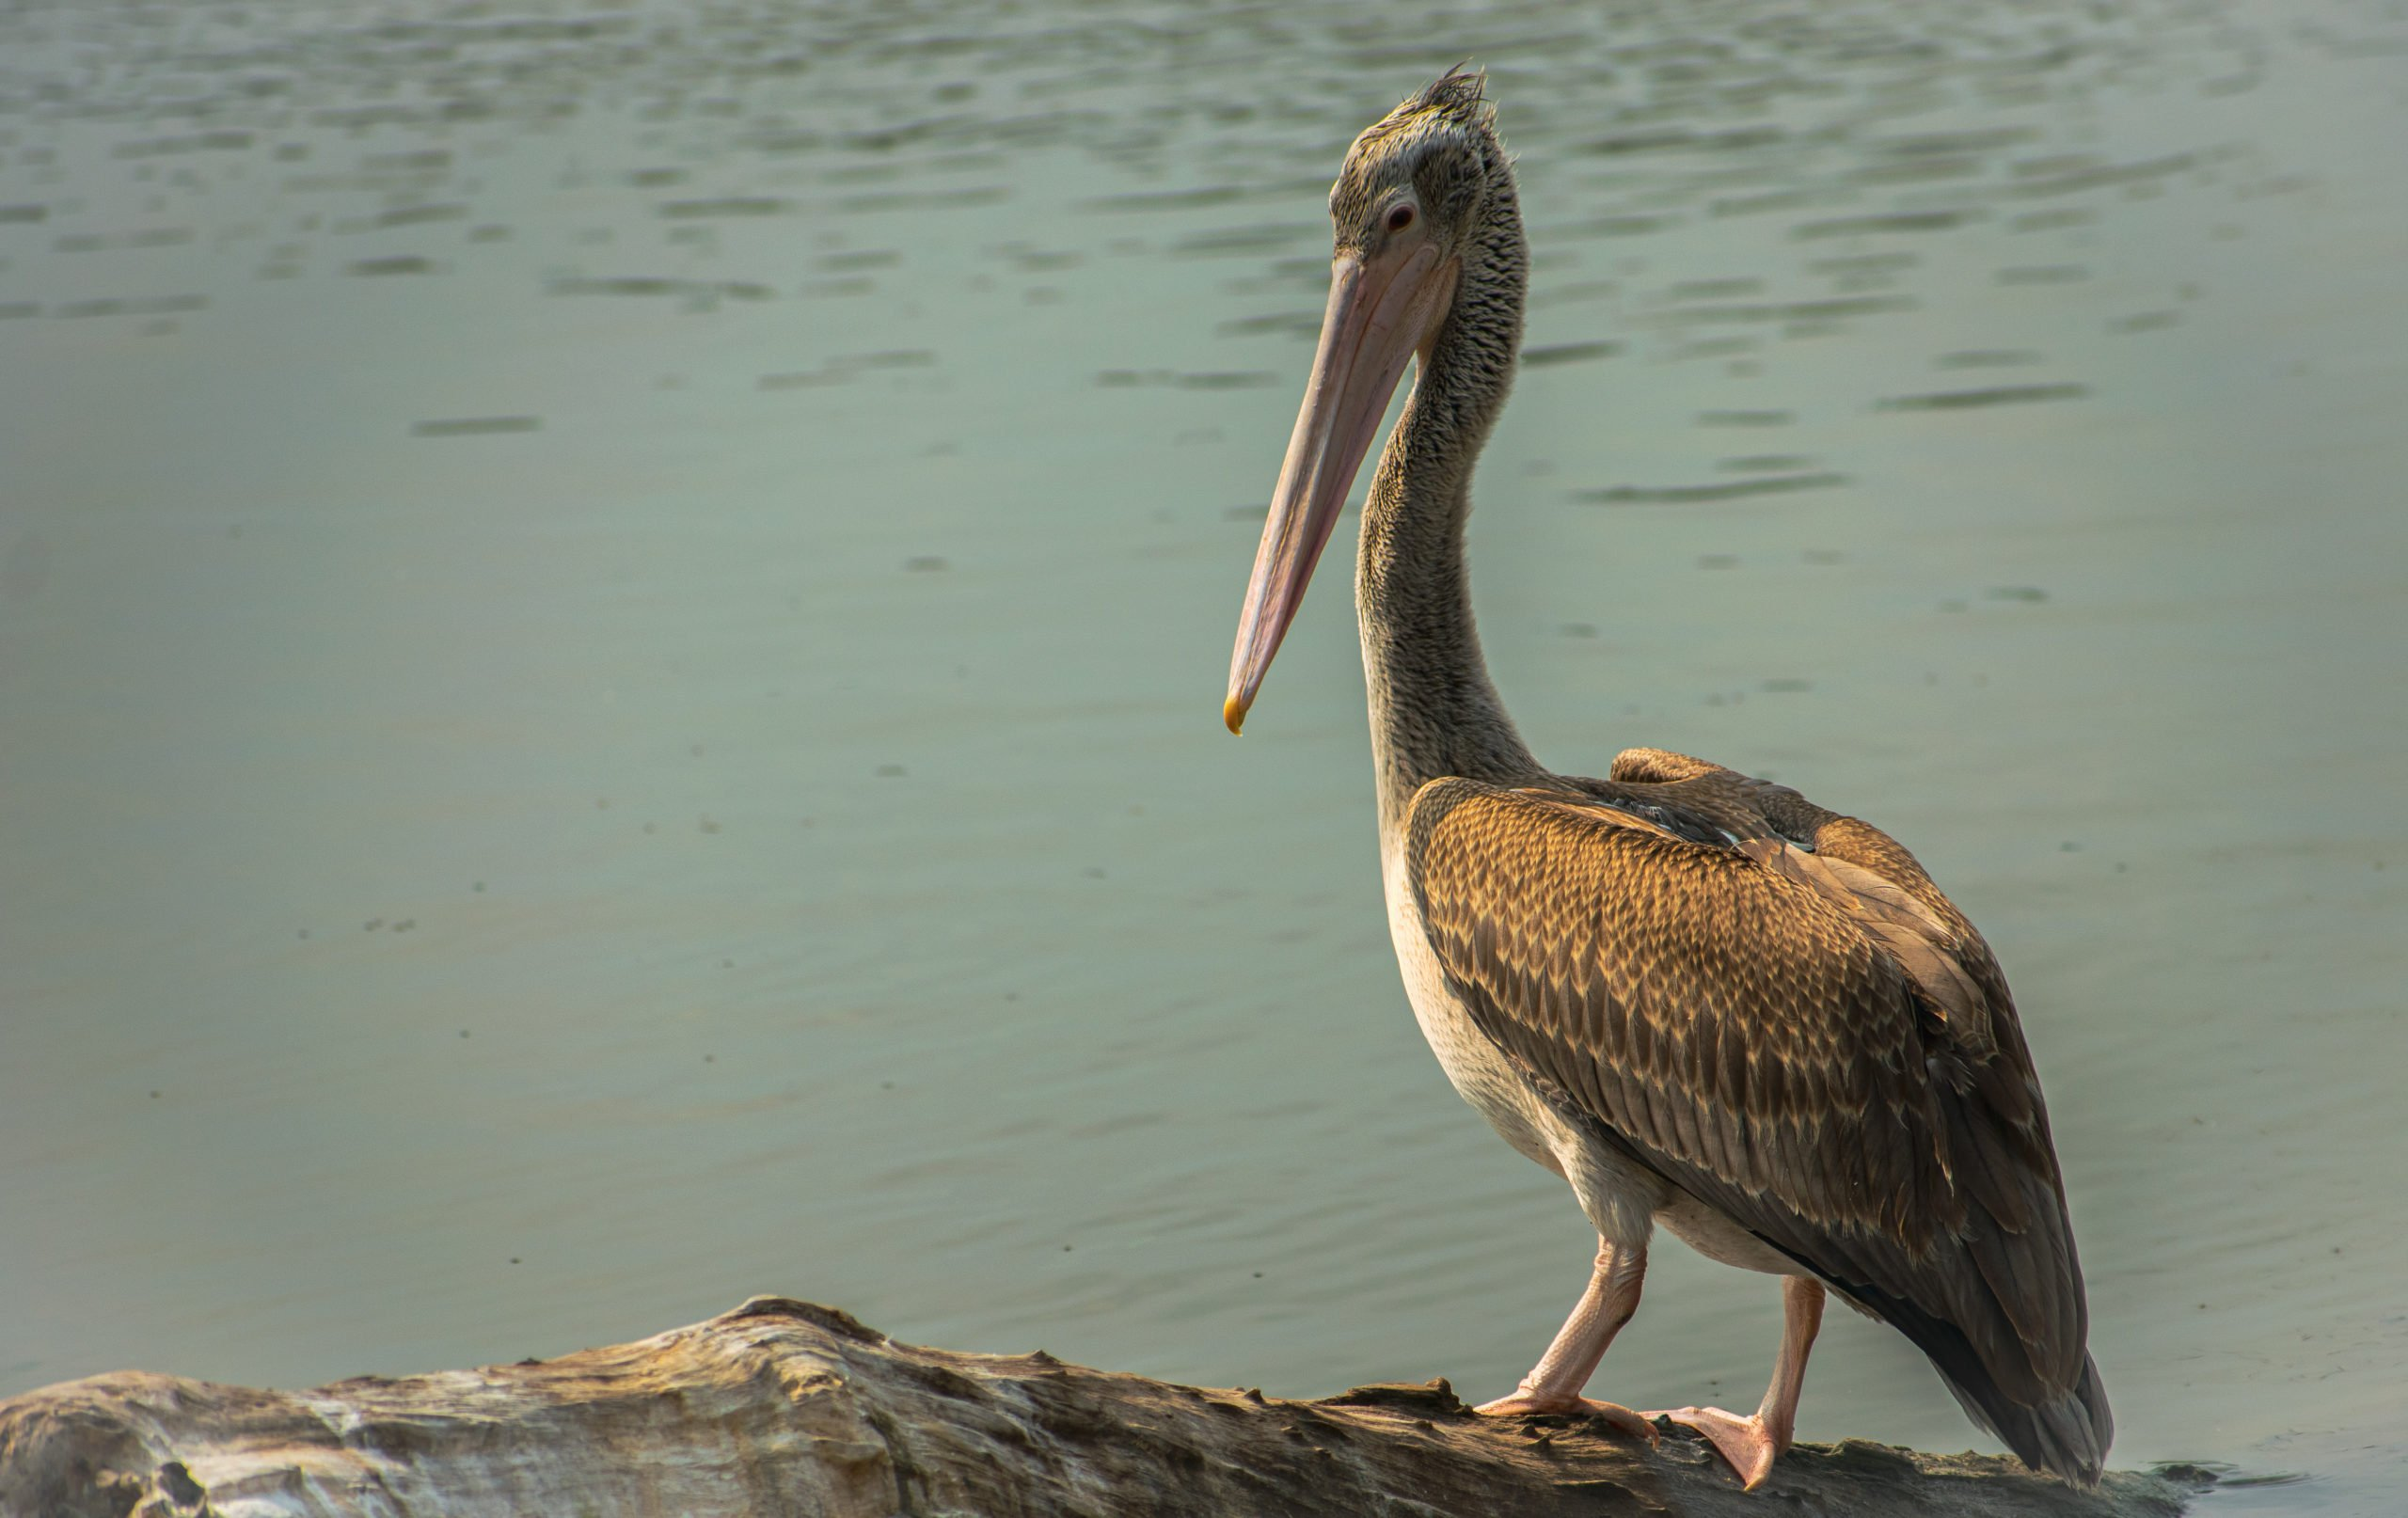 Discover The Rich Bird Life Of Southern India In Our Wildlife Tour In Chennai